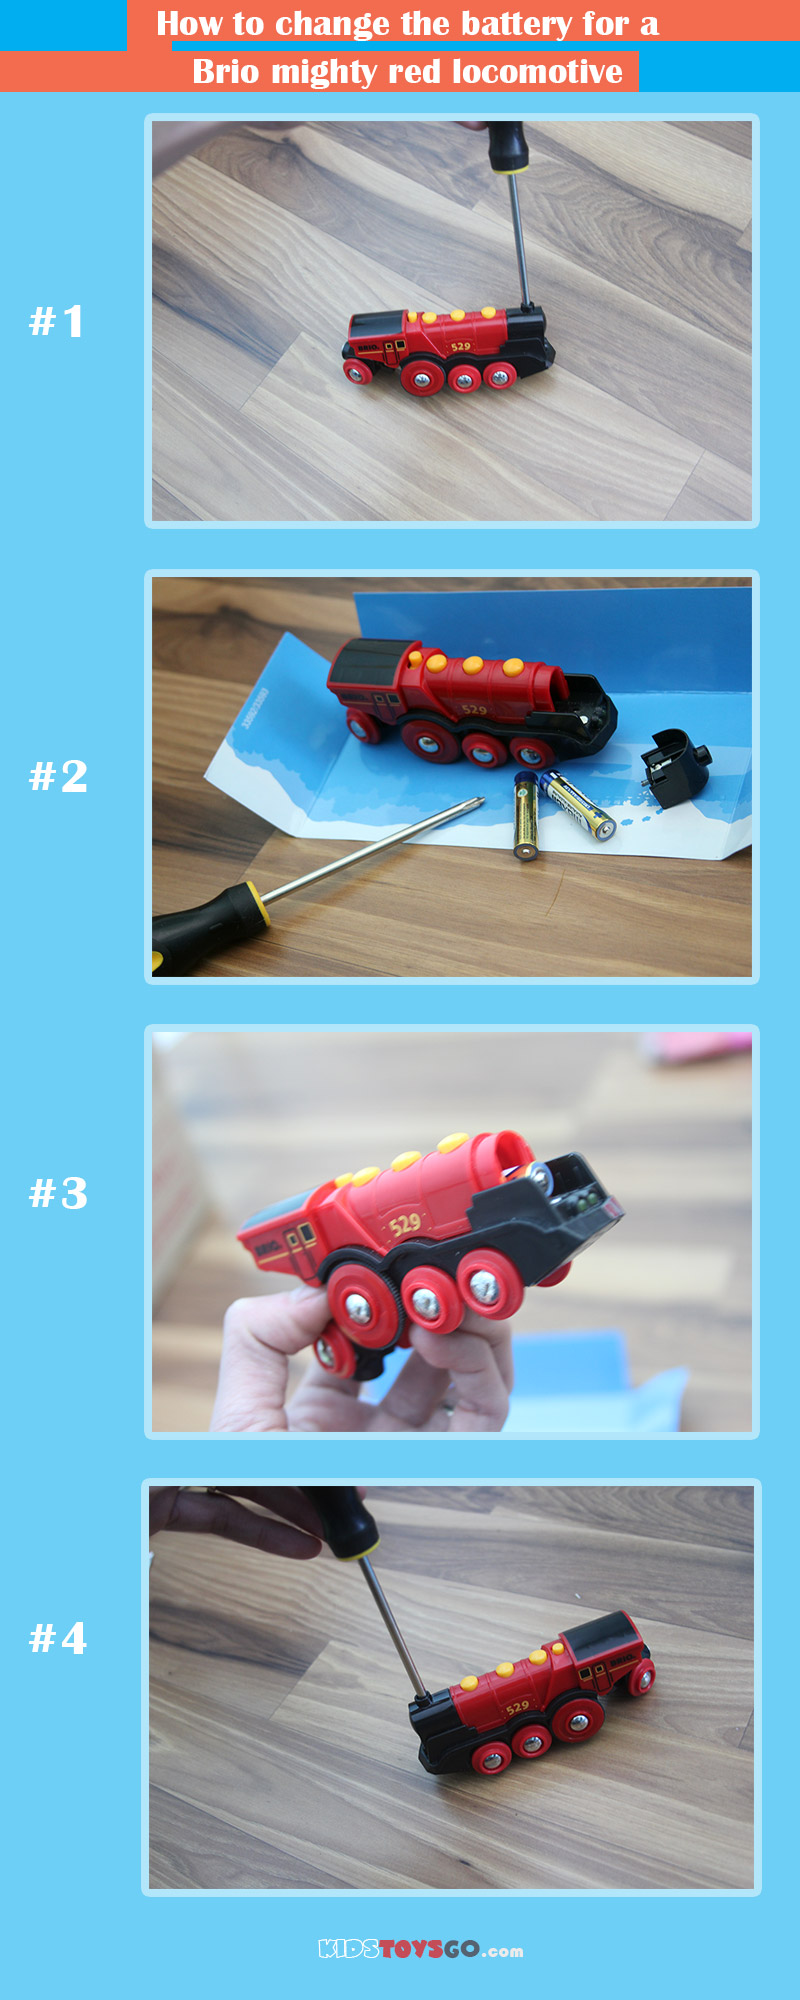 Steps for changing the battery on Brio mighty red locomotive